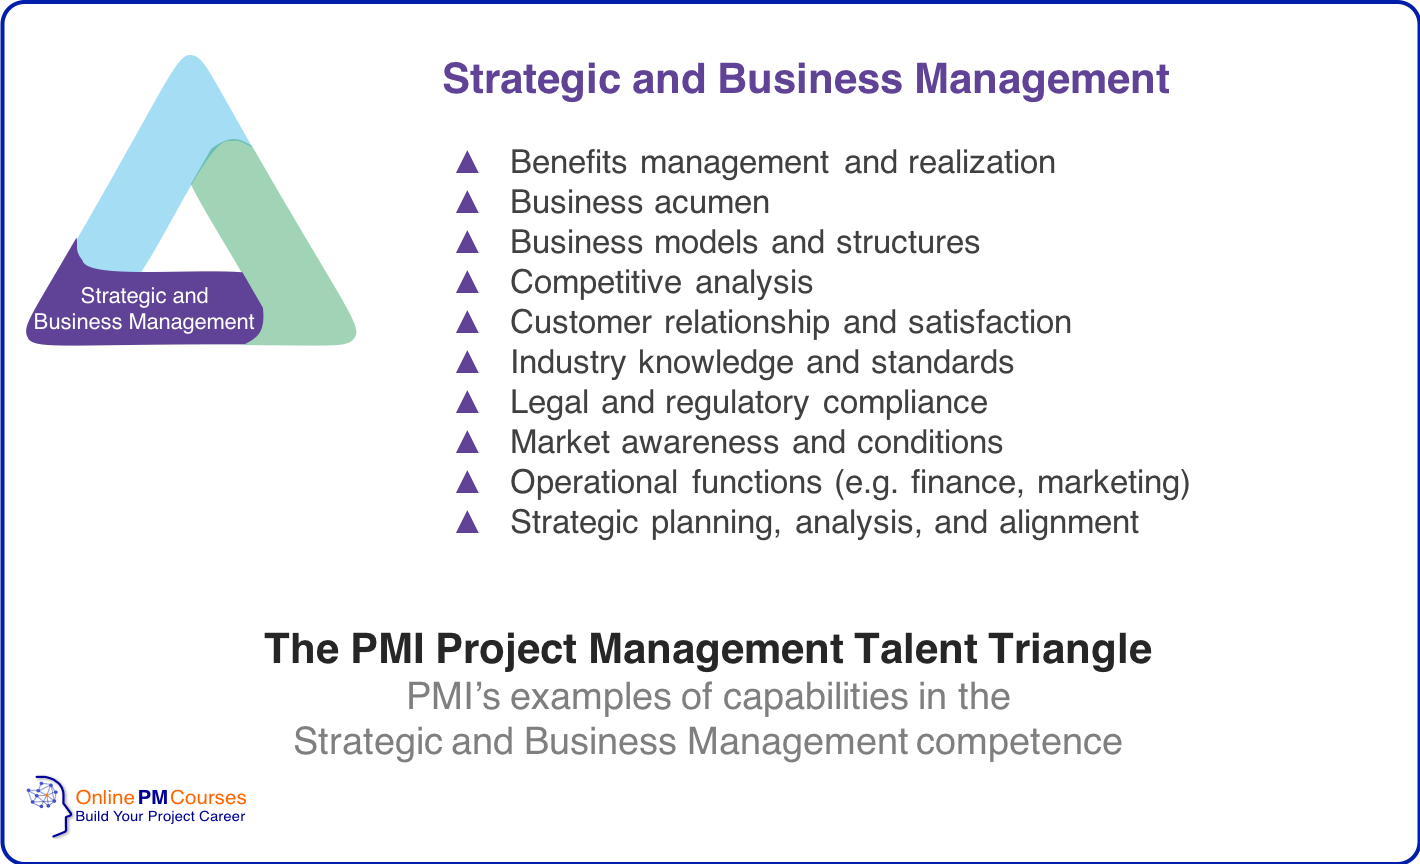 The PMI Talent Triangle: A Guide [for members and non